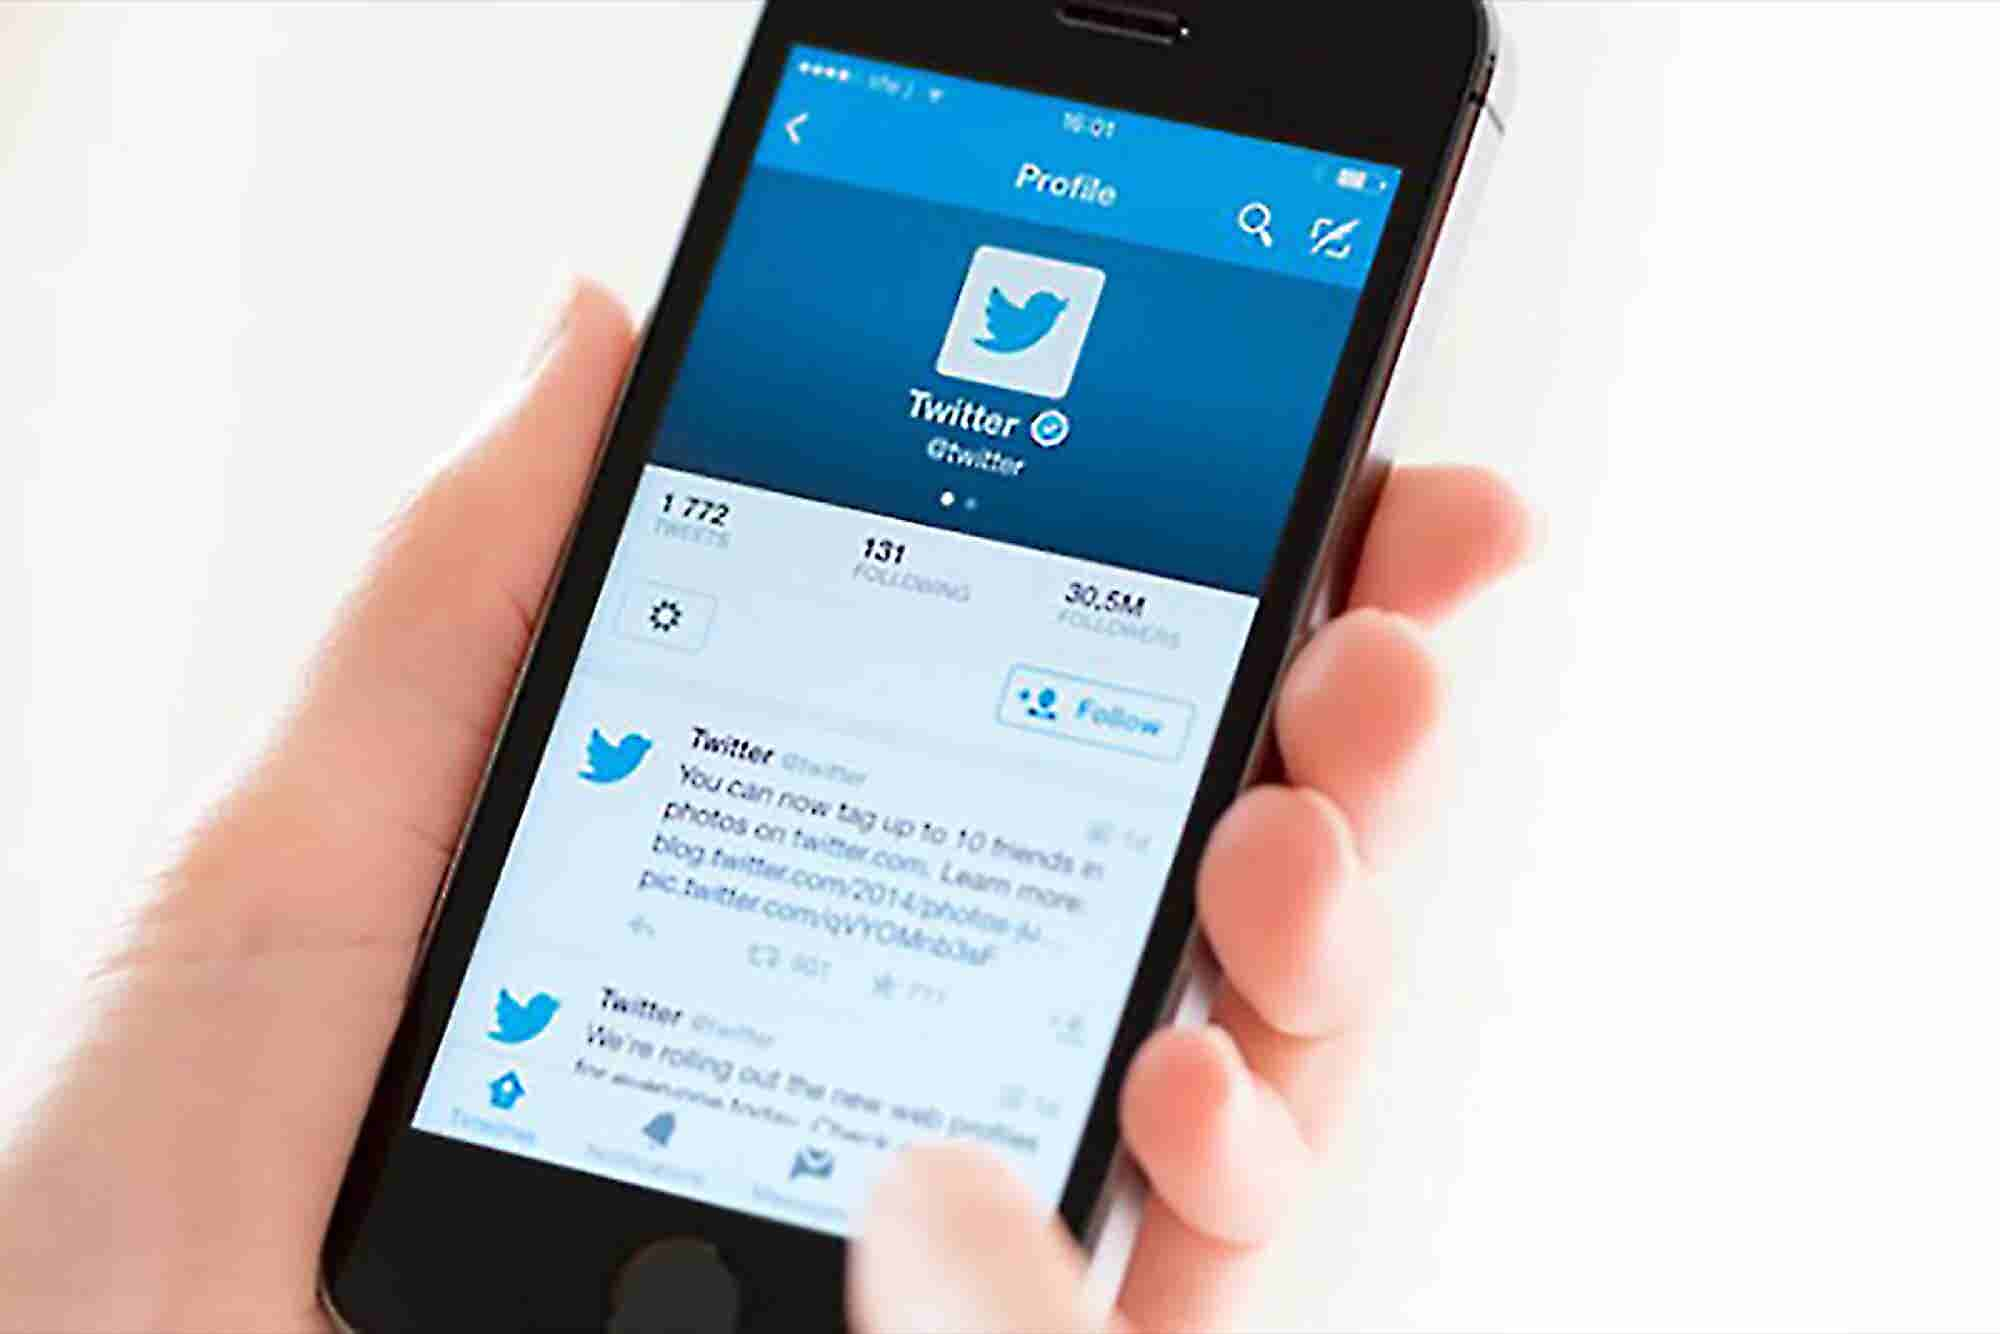 Right-Sizing the Twitter Support Strategy for a Business